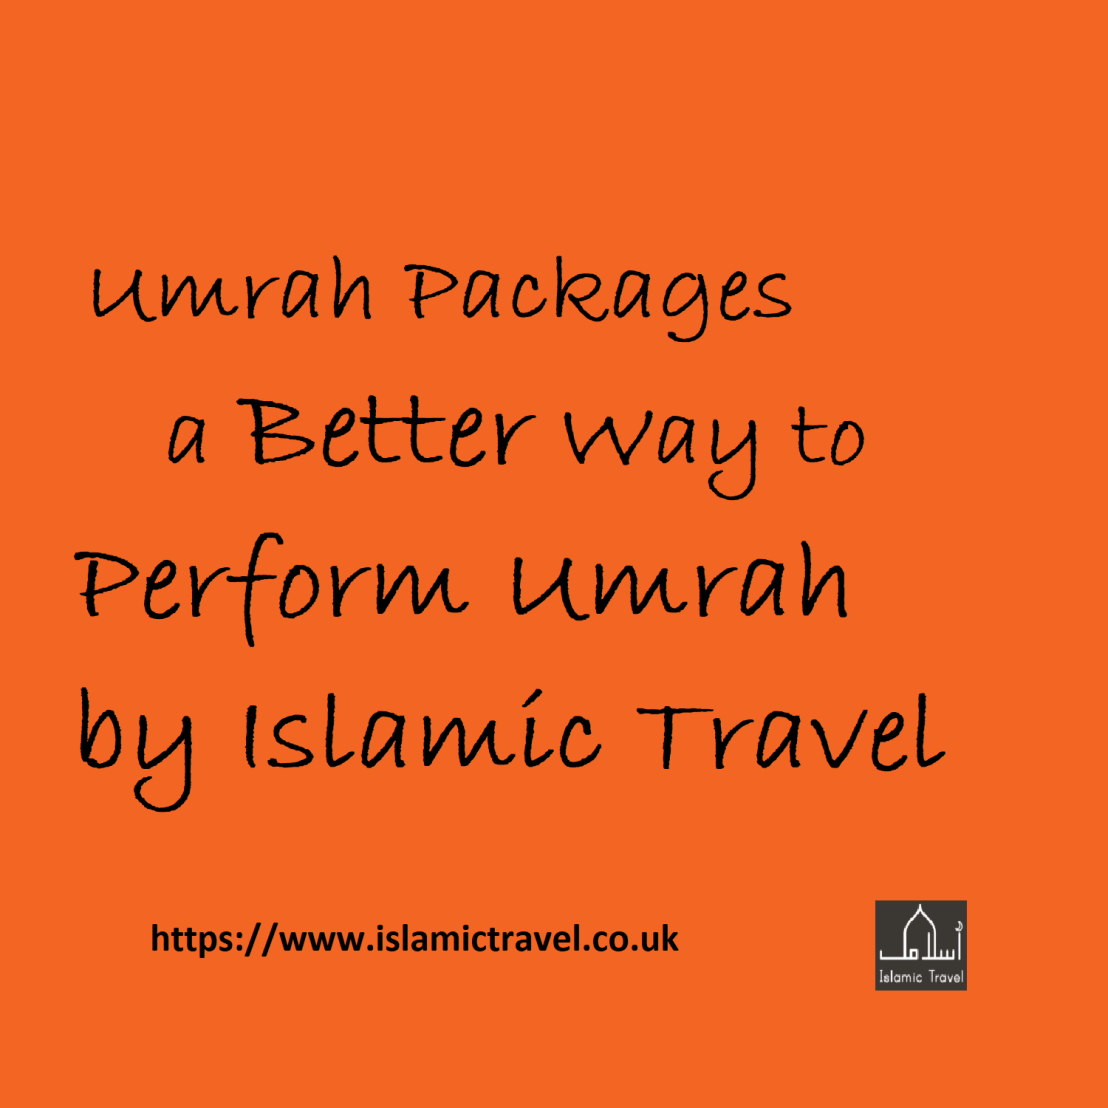 Umrah Packages a Better Way to Perform Umrah by Islamic Travel